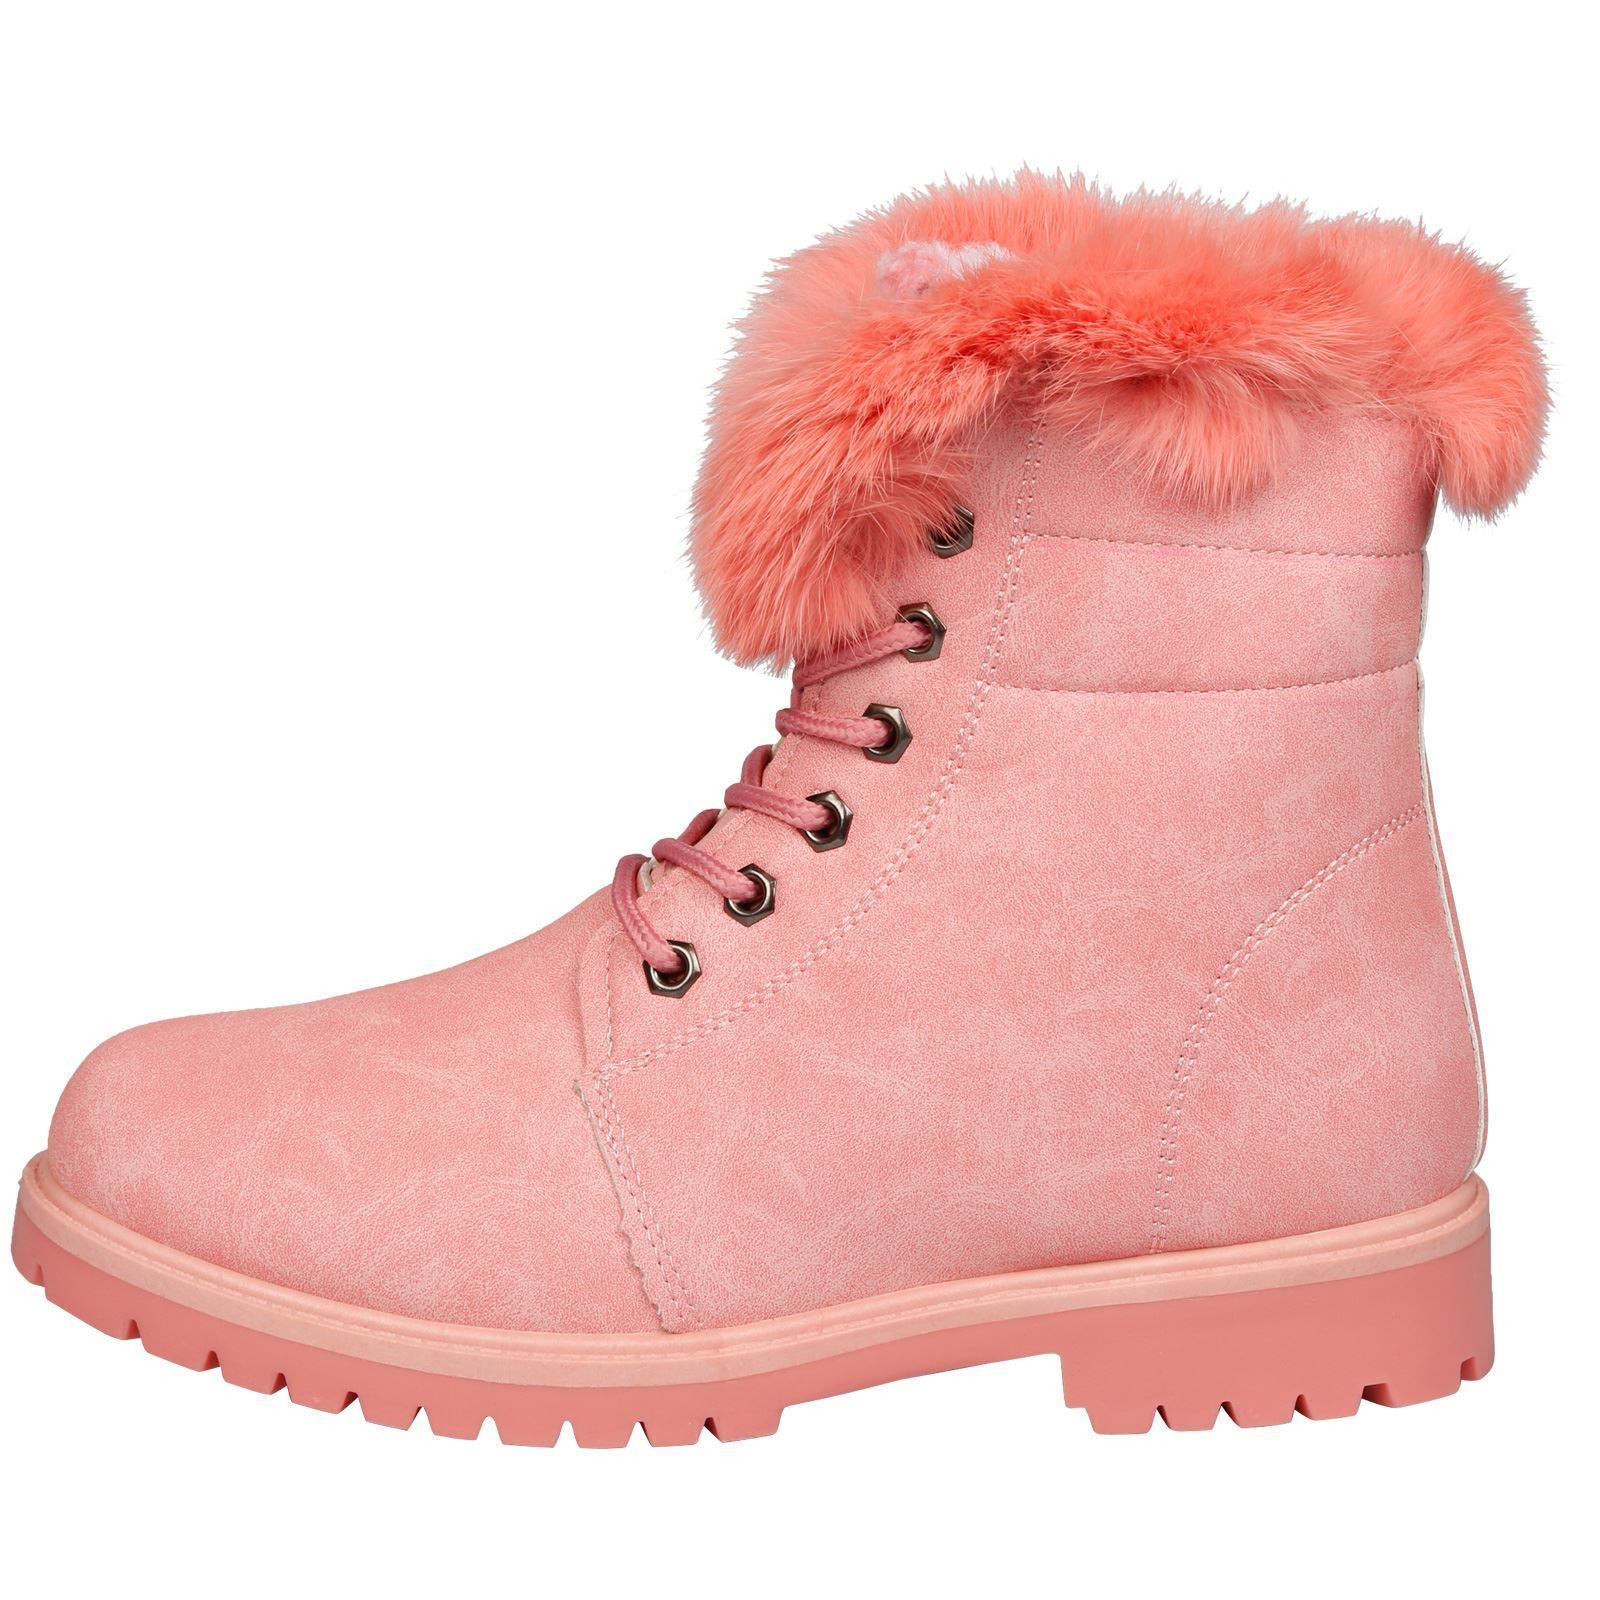 NEW-WOMEN-SHOES-LADIES-FUR-LINED-LOW-HEEL-LACE-UP-ANKLE-BOOTS-CASUAL-STYLE-SIZE thumbnail 16